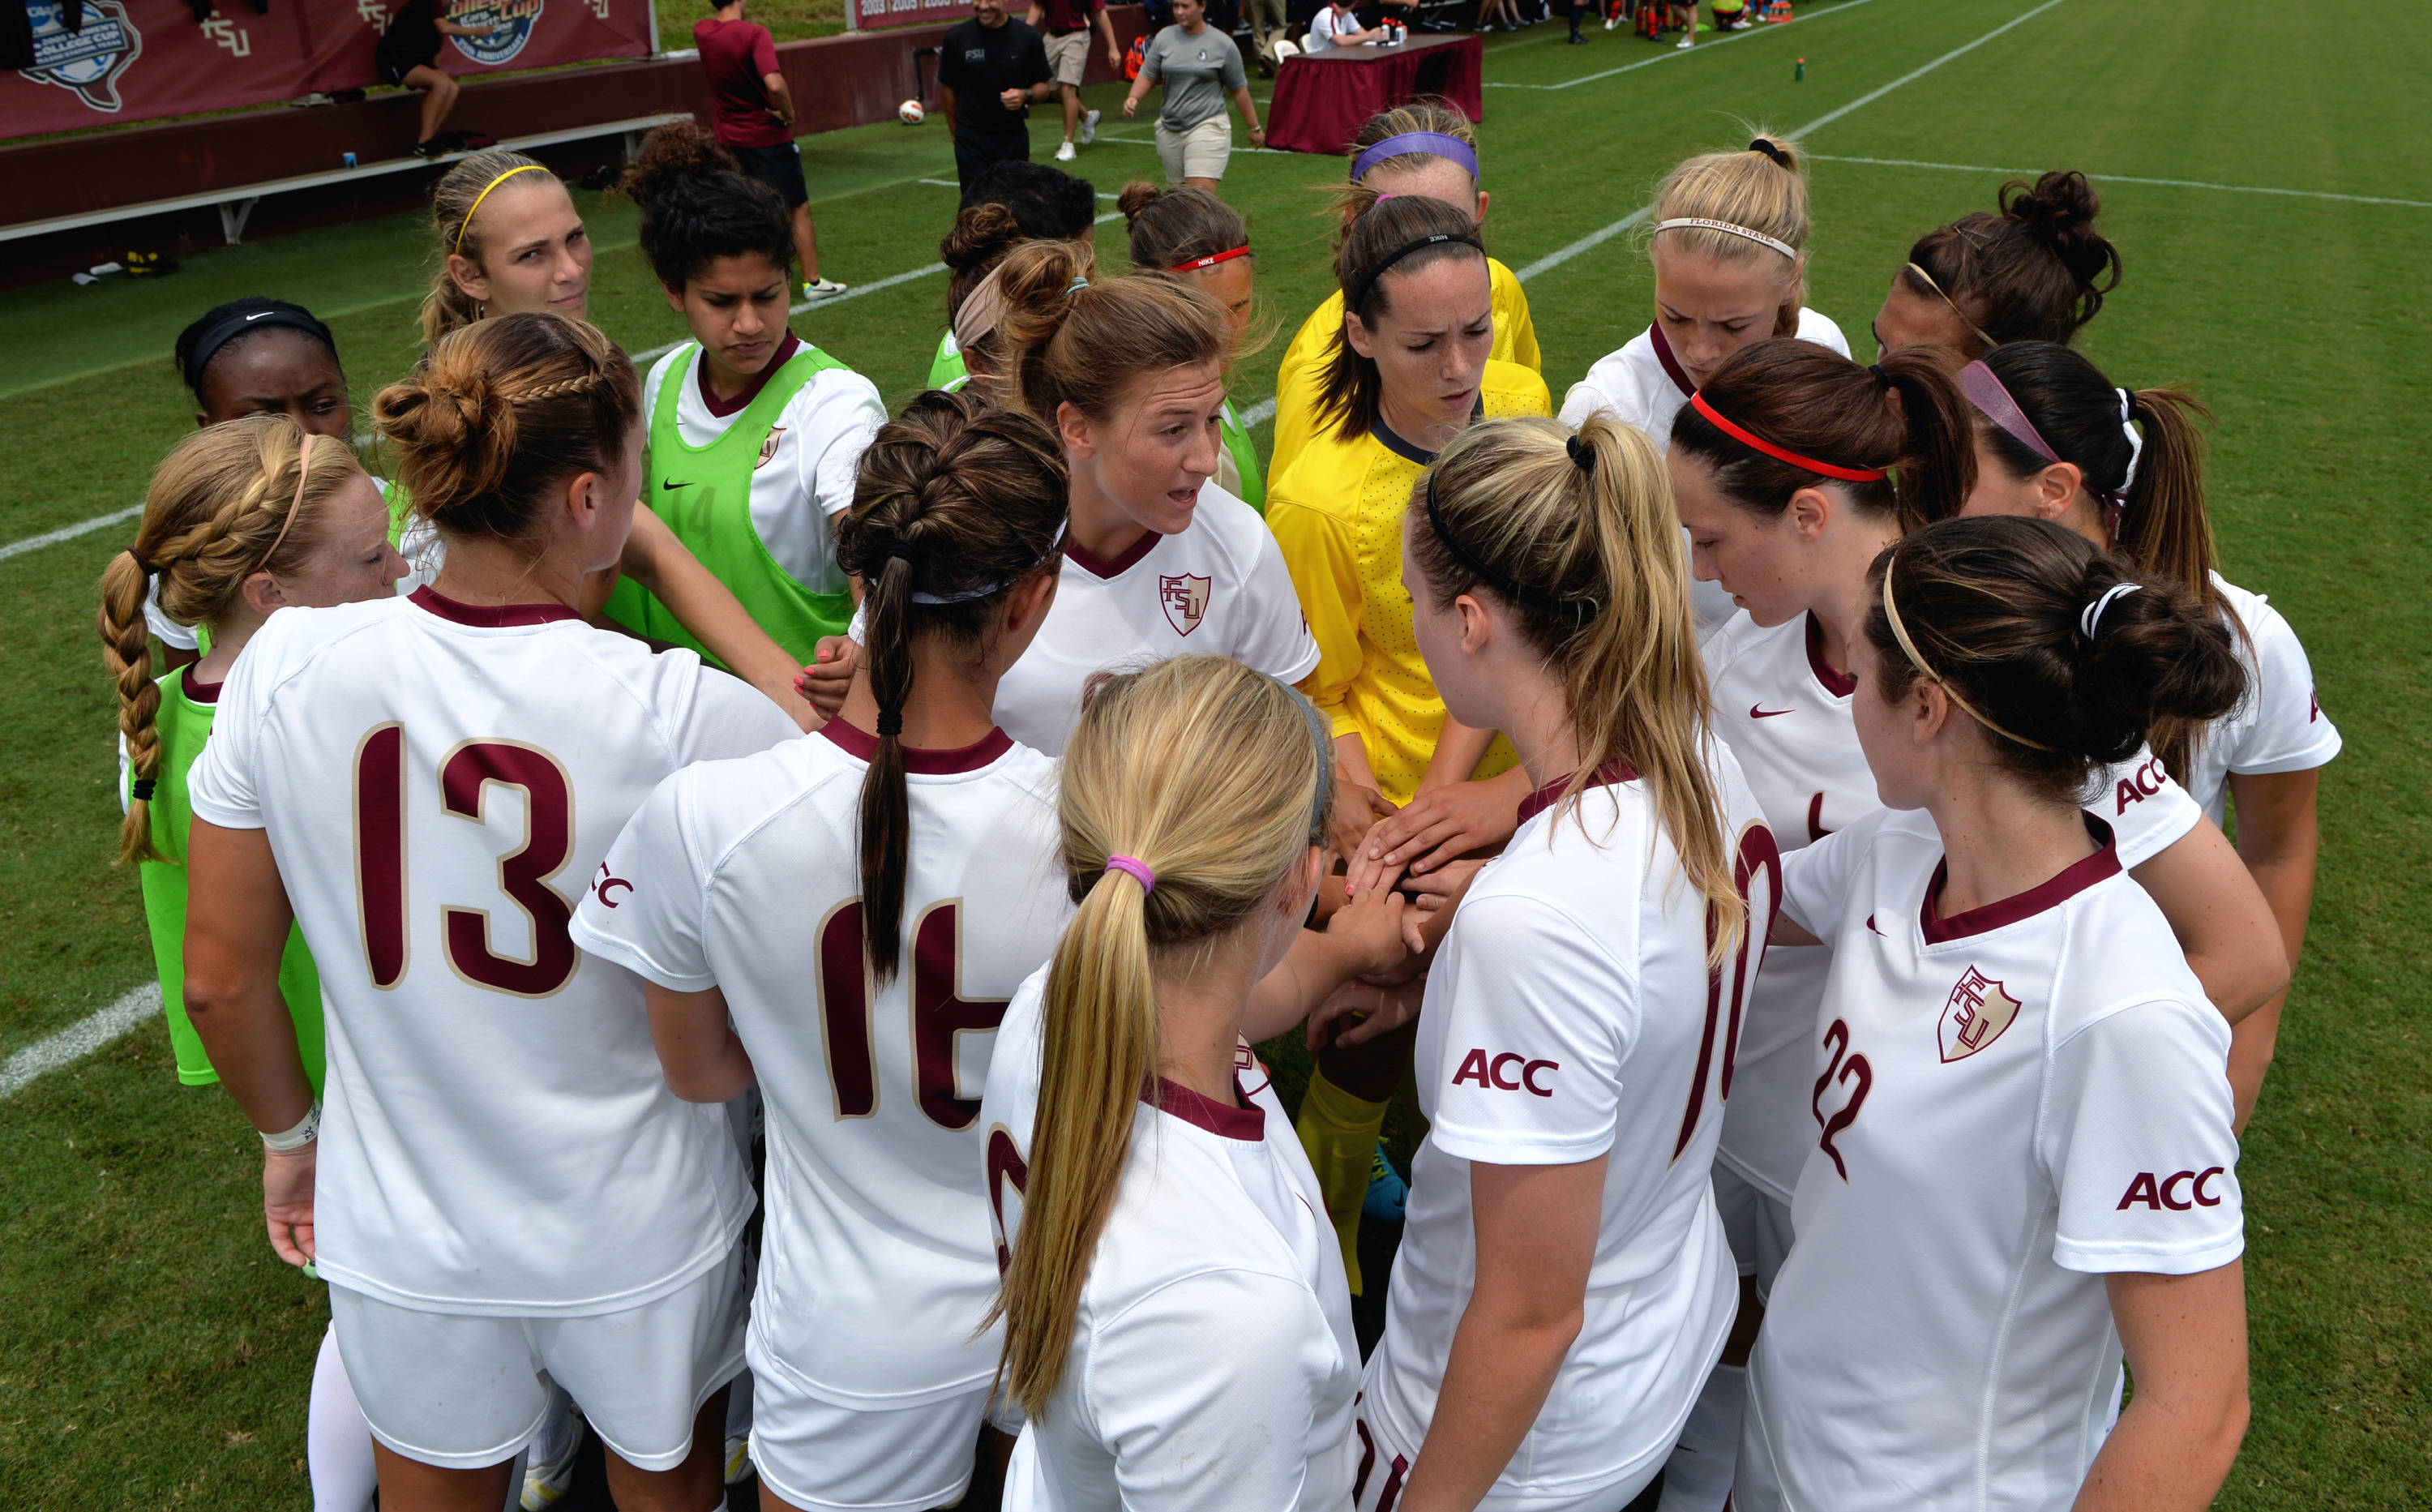 The Seminoles huddle before the start of Sunday's match against Auburn.